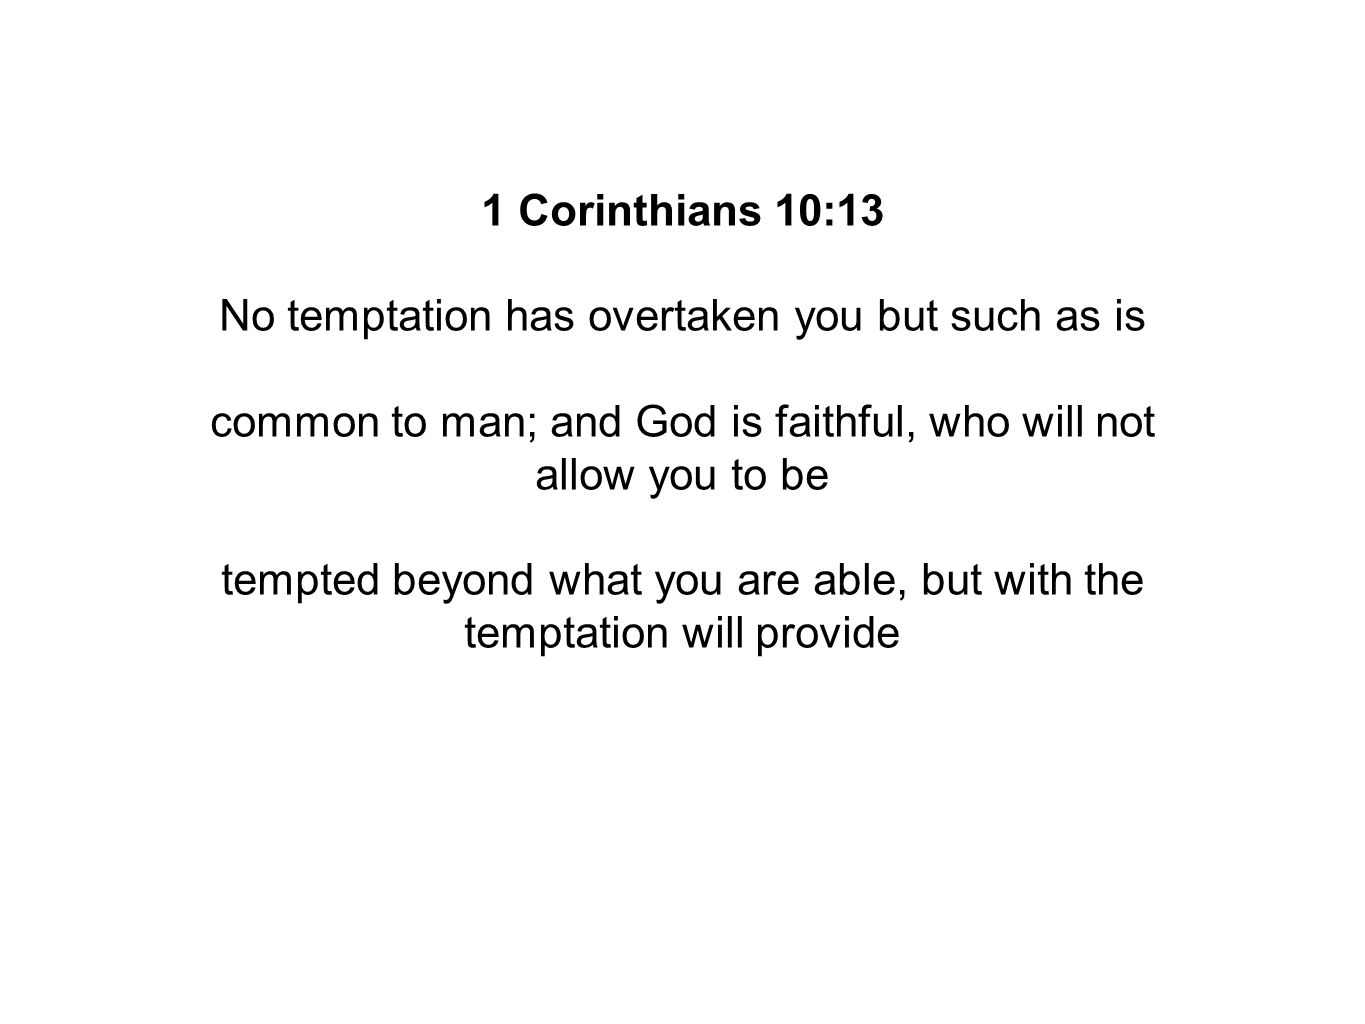 1 Corinthians 10:13 No temptation has overtaken you but such as is common to man; and God is faithful, who will not allow you to be tempted beyond what you are able, but with the temptation will provide